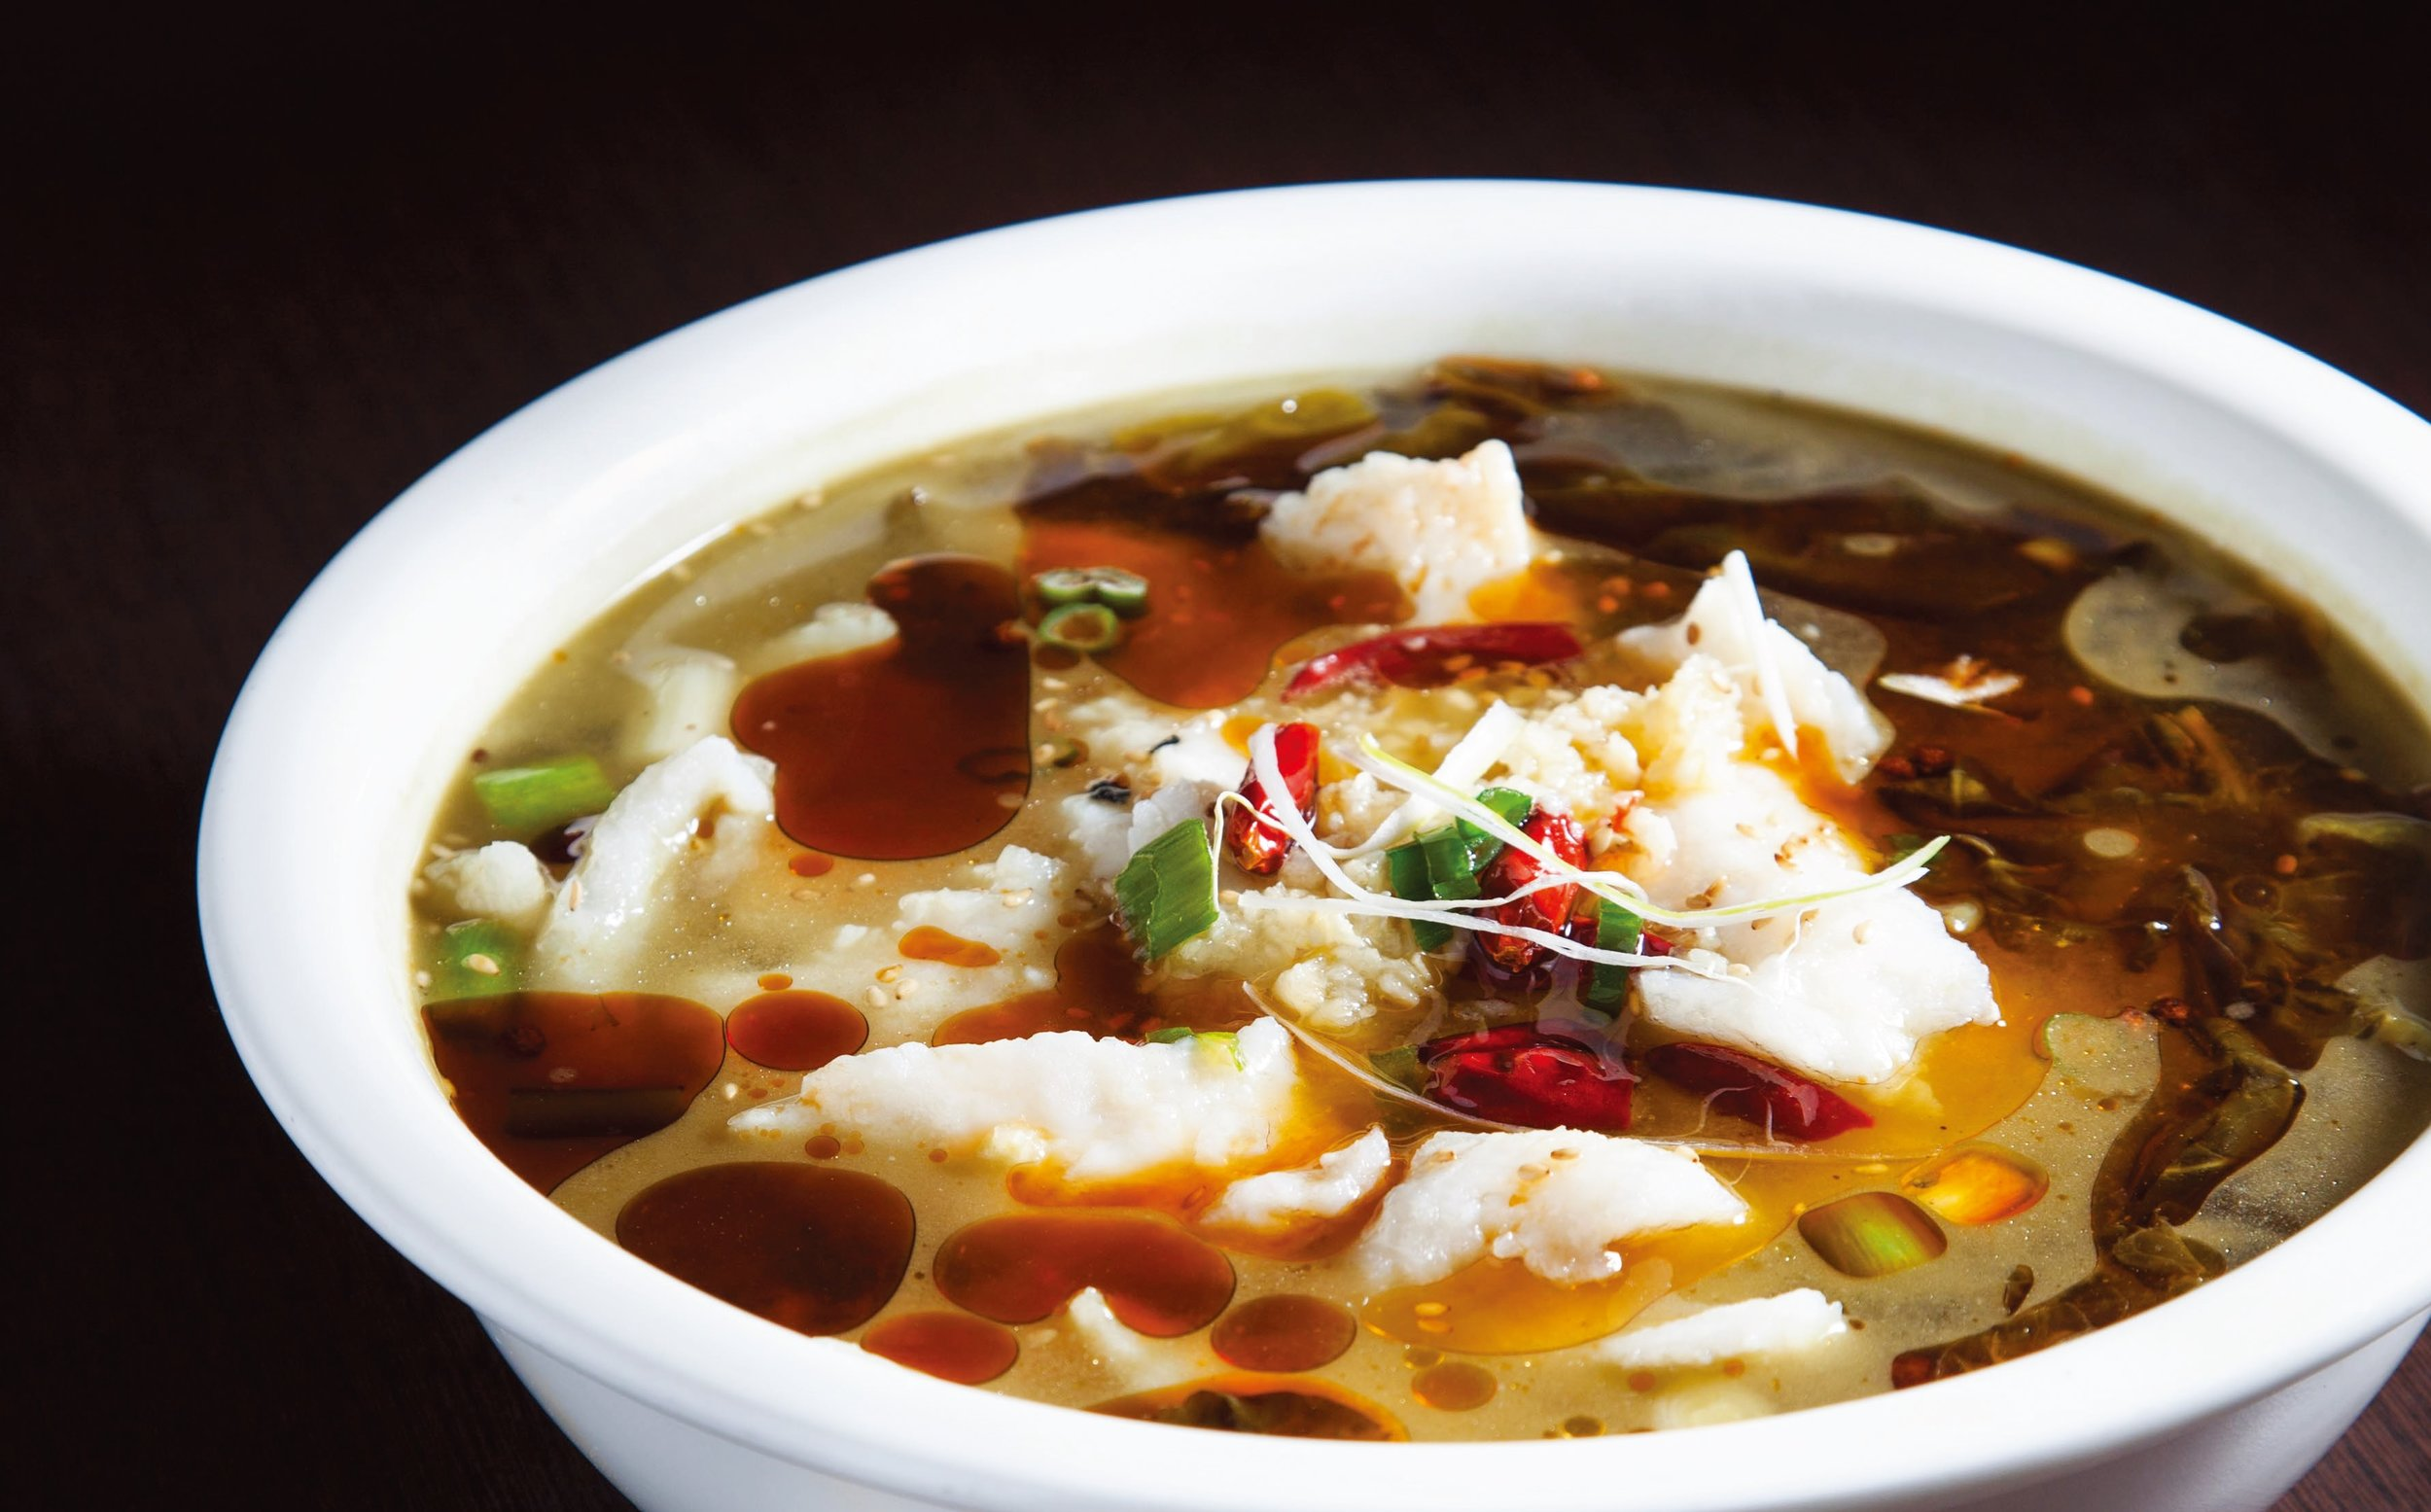 Hot & spicy basa fillet soup with pickled veggies